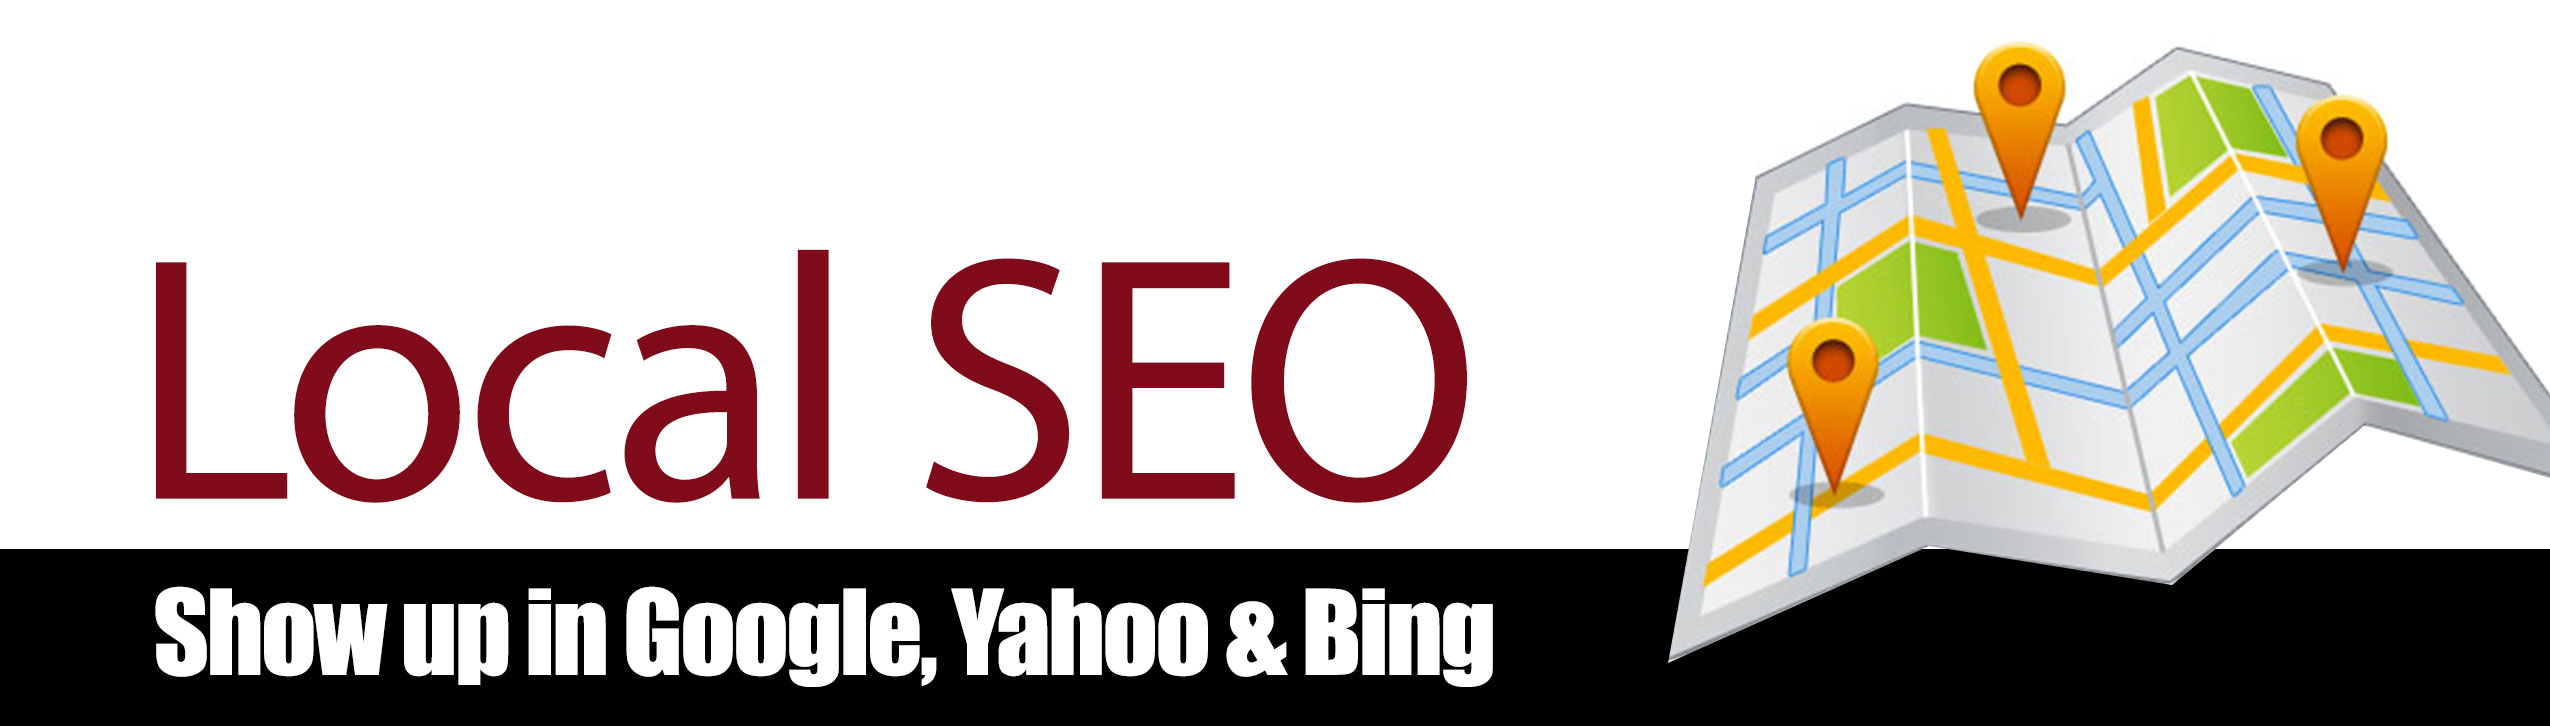 Local SEO for Business in Jackson, MS